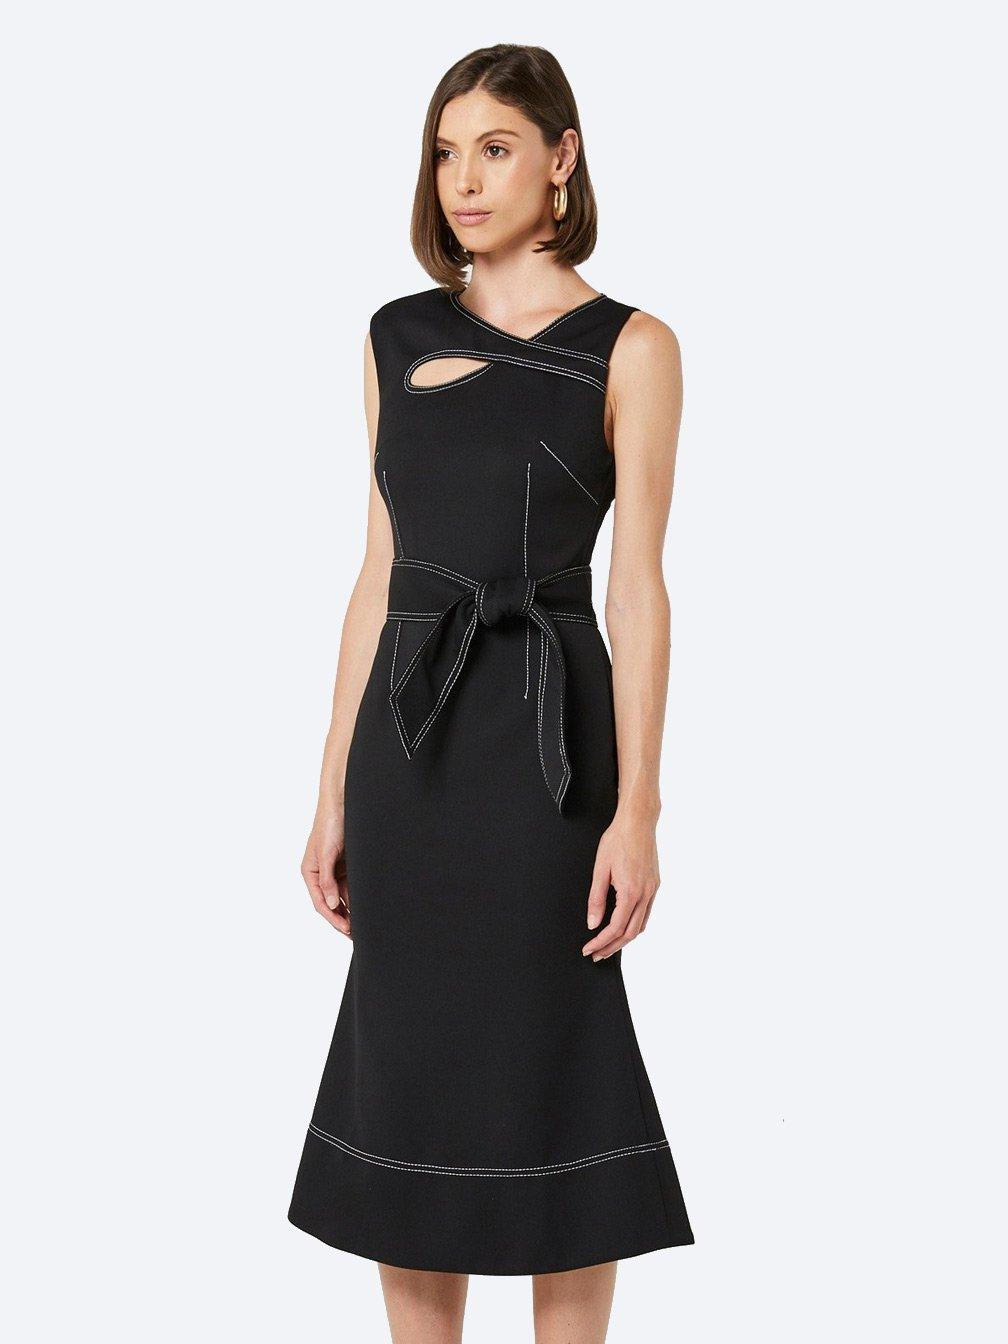 Yeltuor - ELLIATT - Dresses - ELLIATT CHIARA SLEEVELESS DRESS -  -